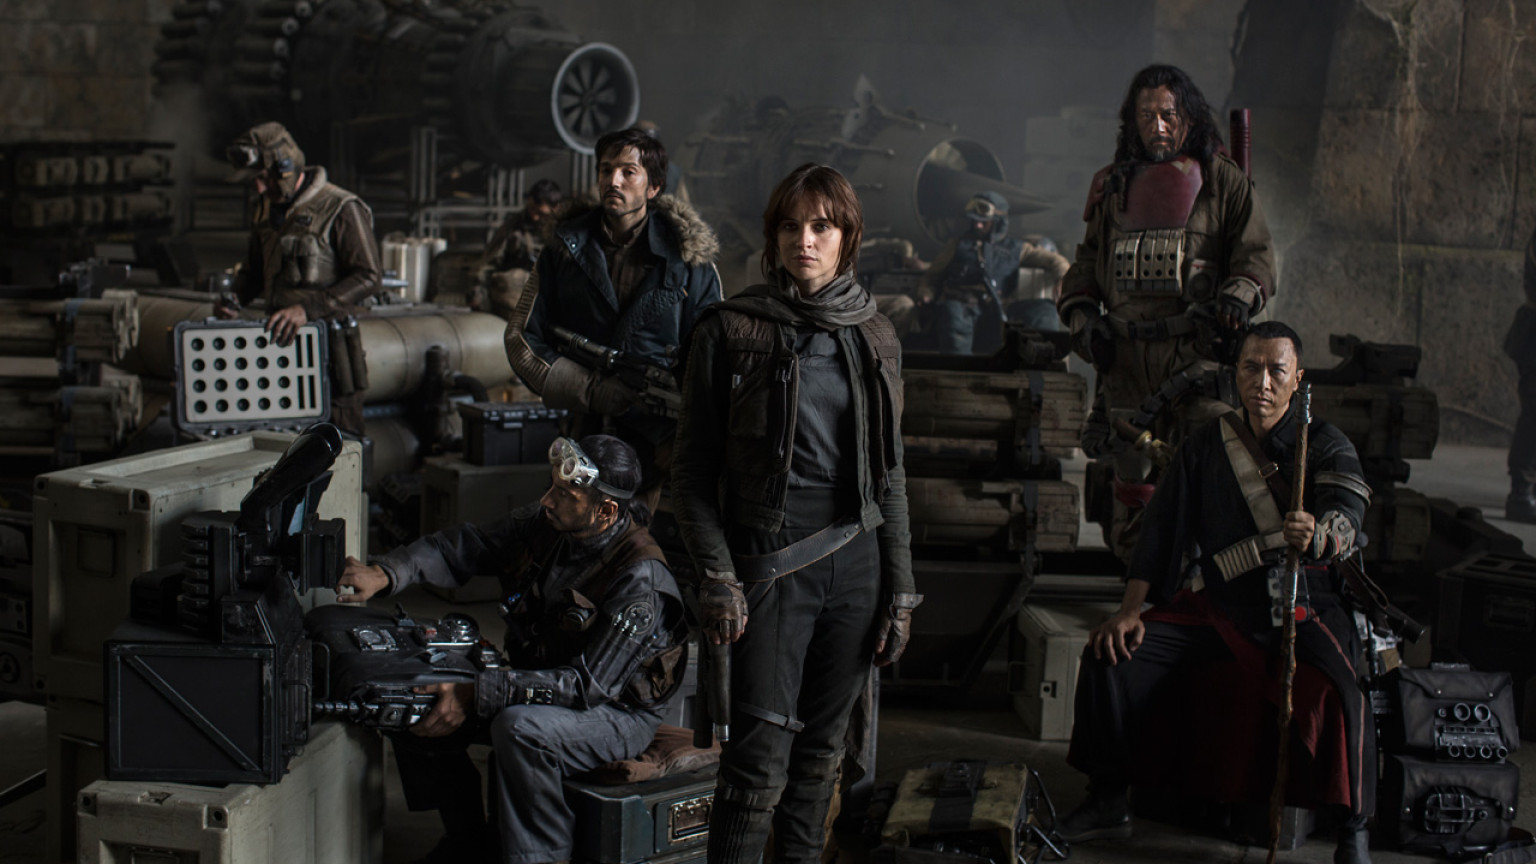 rogue-one-cast-photo-d23-1536x864-521514304075.jpg